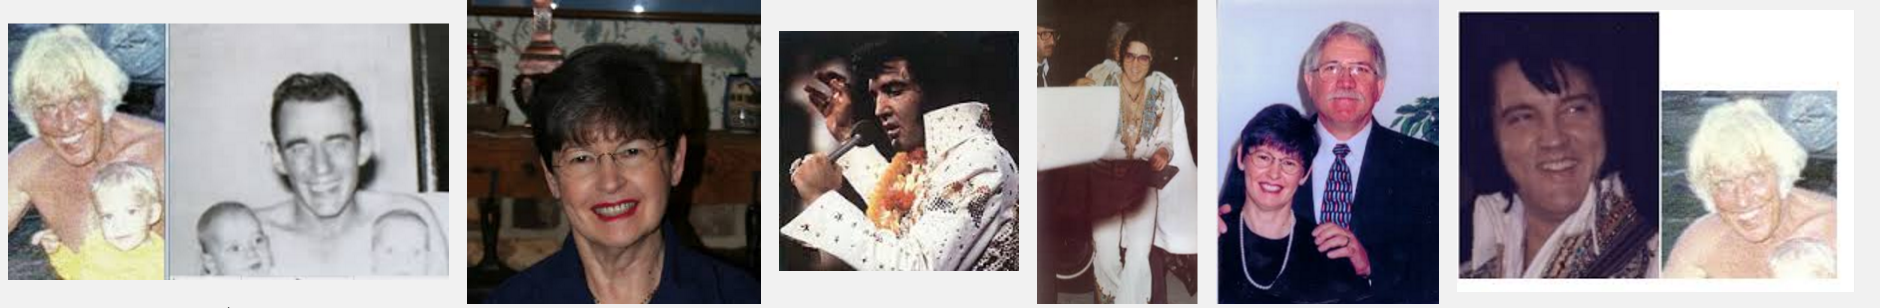 linda sigmond hood s debunked elvis photos   Google Search